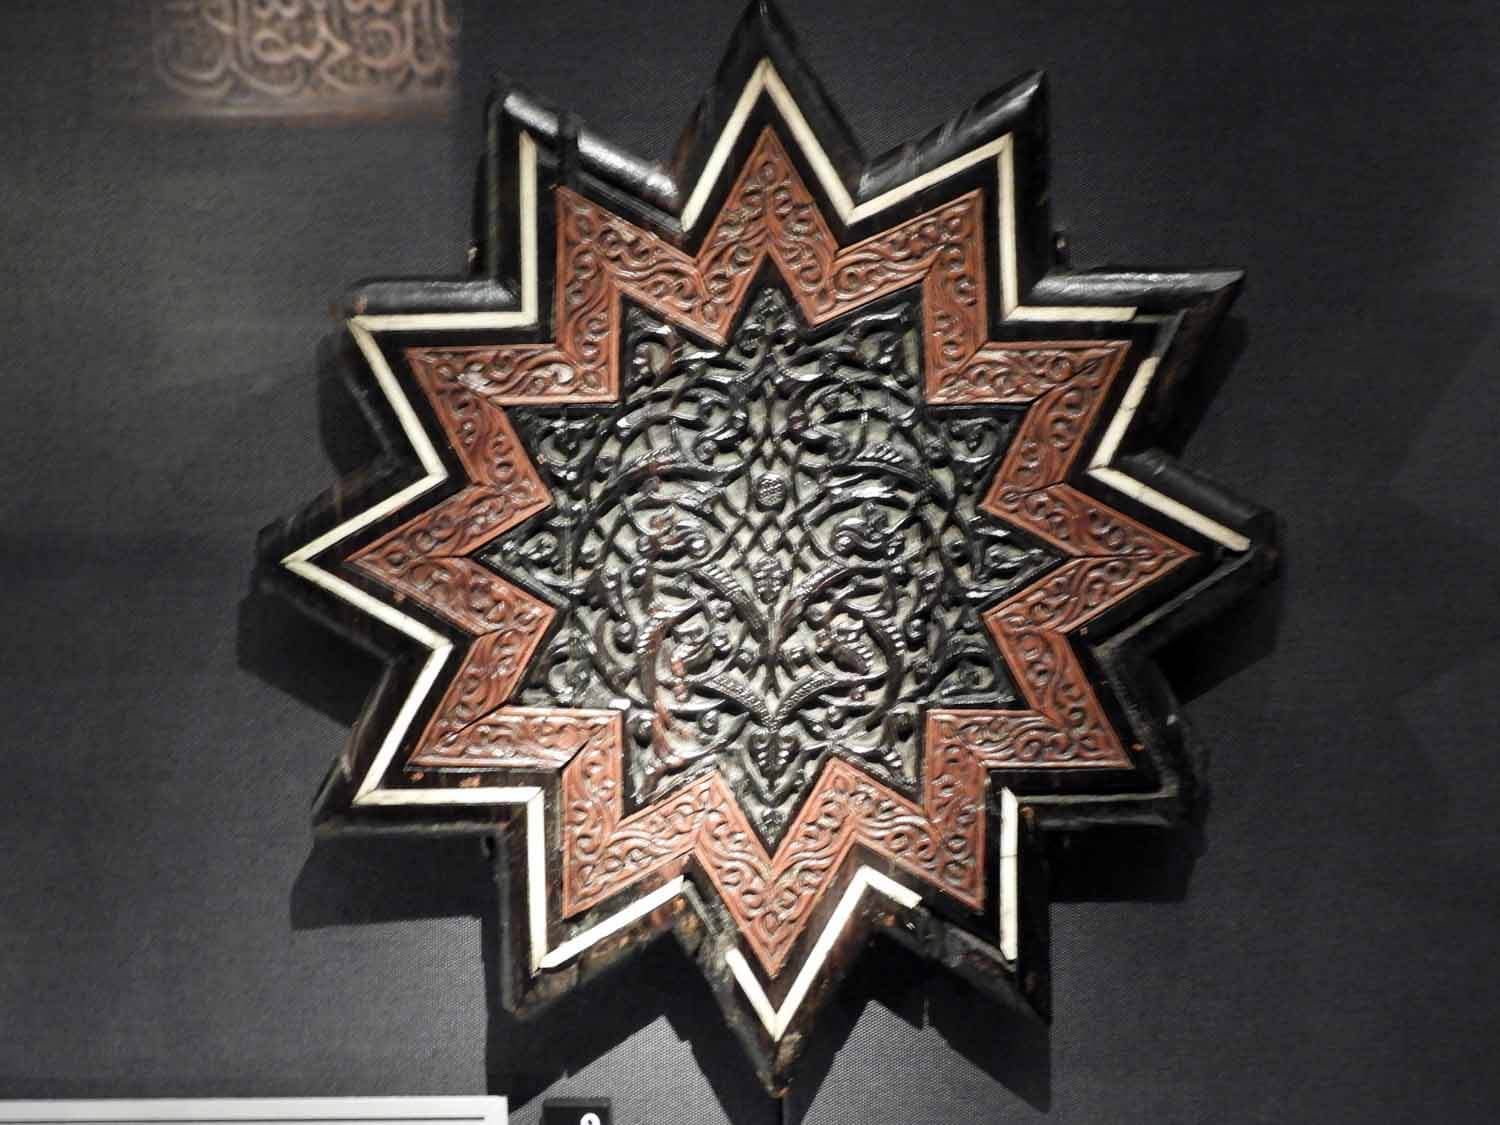 denmark-copenhagen-david-collection-museum-muslim-islam-art-star.JPG